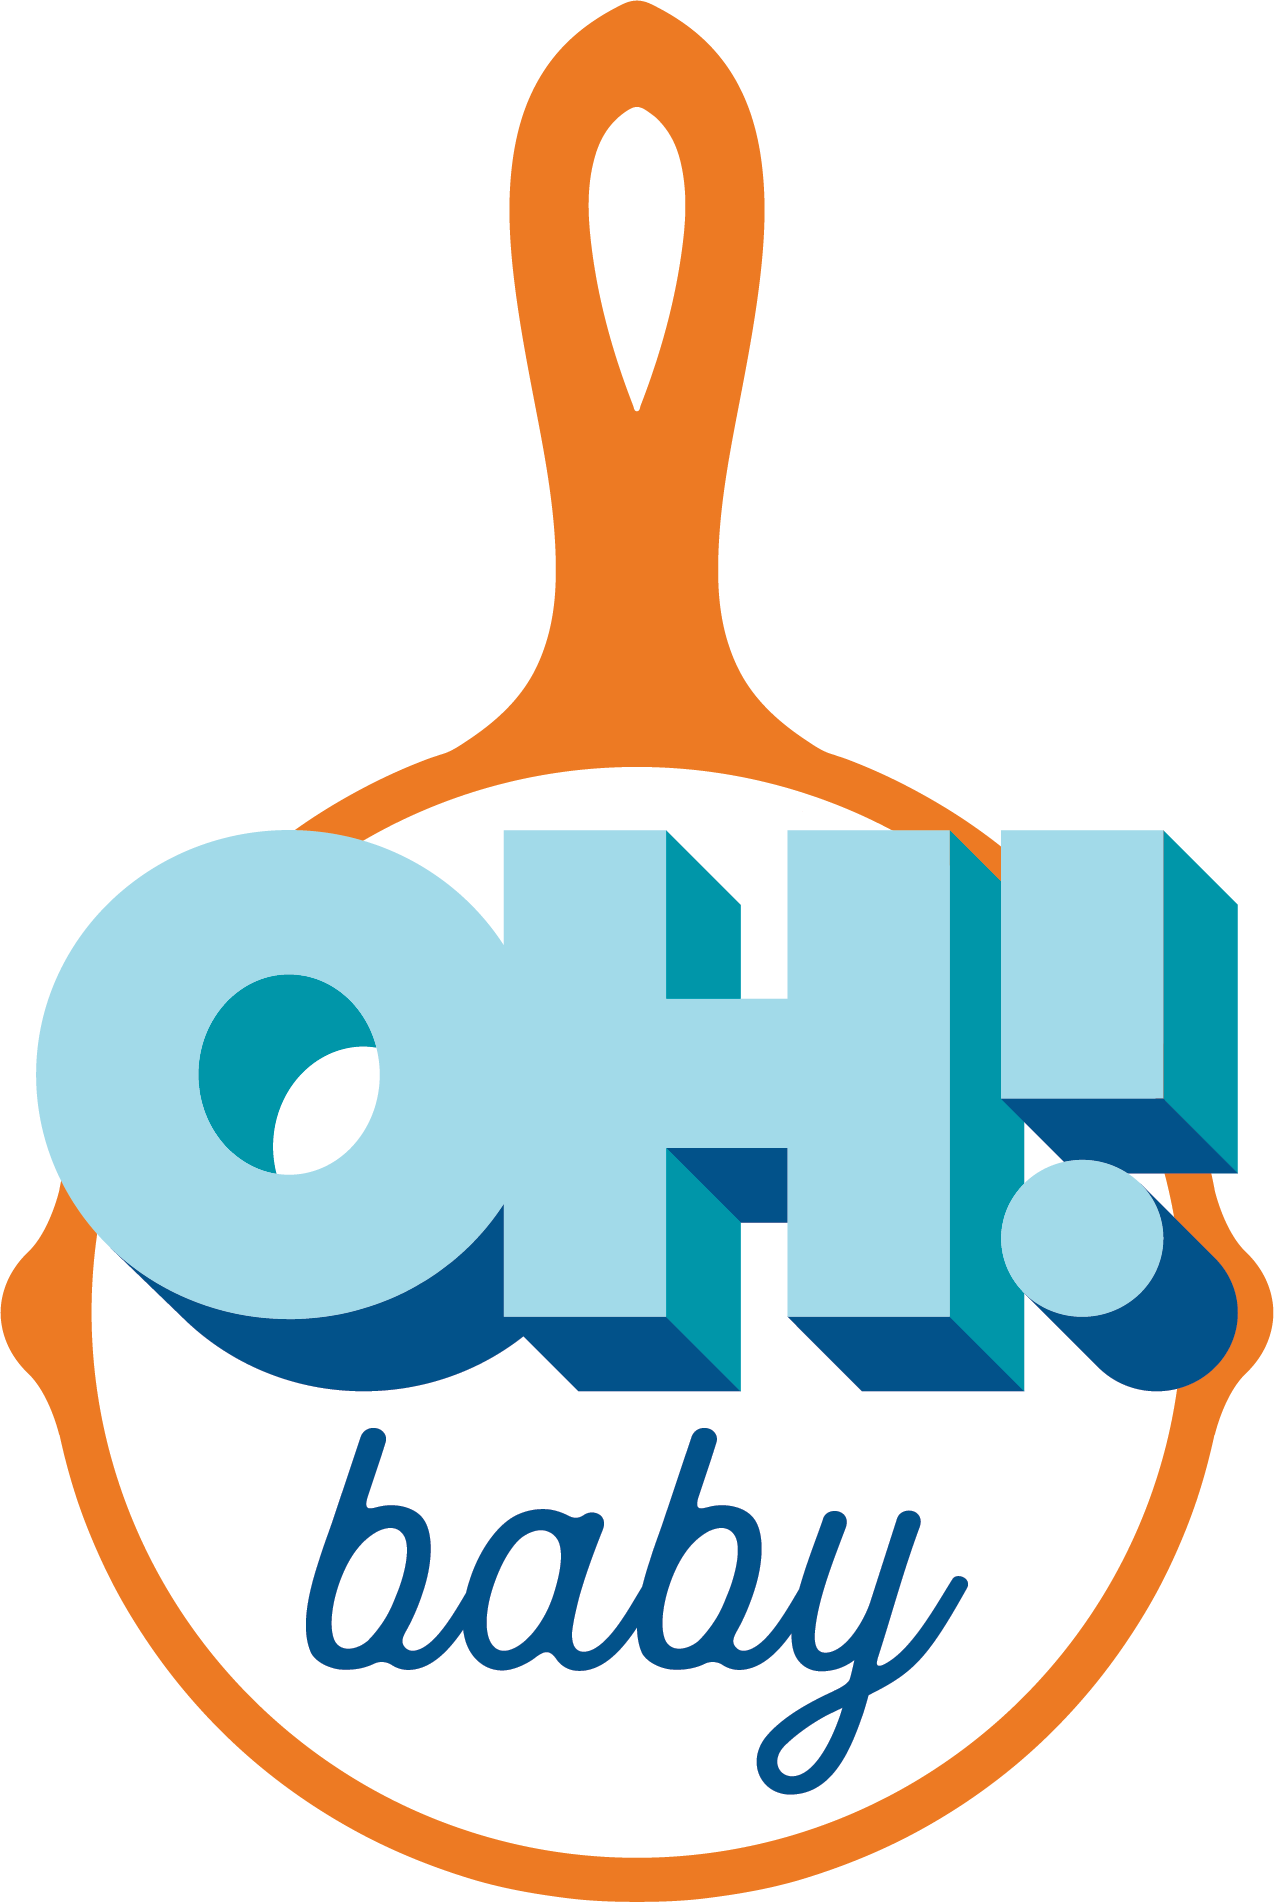 OH BABY OKC Oklahoma City - The House OKC